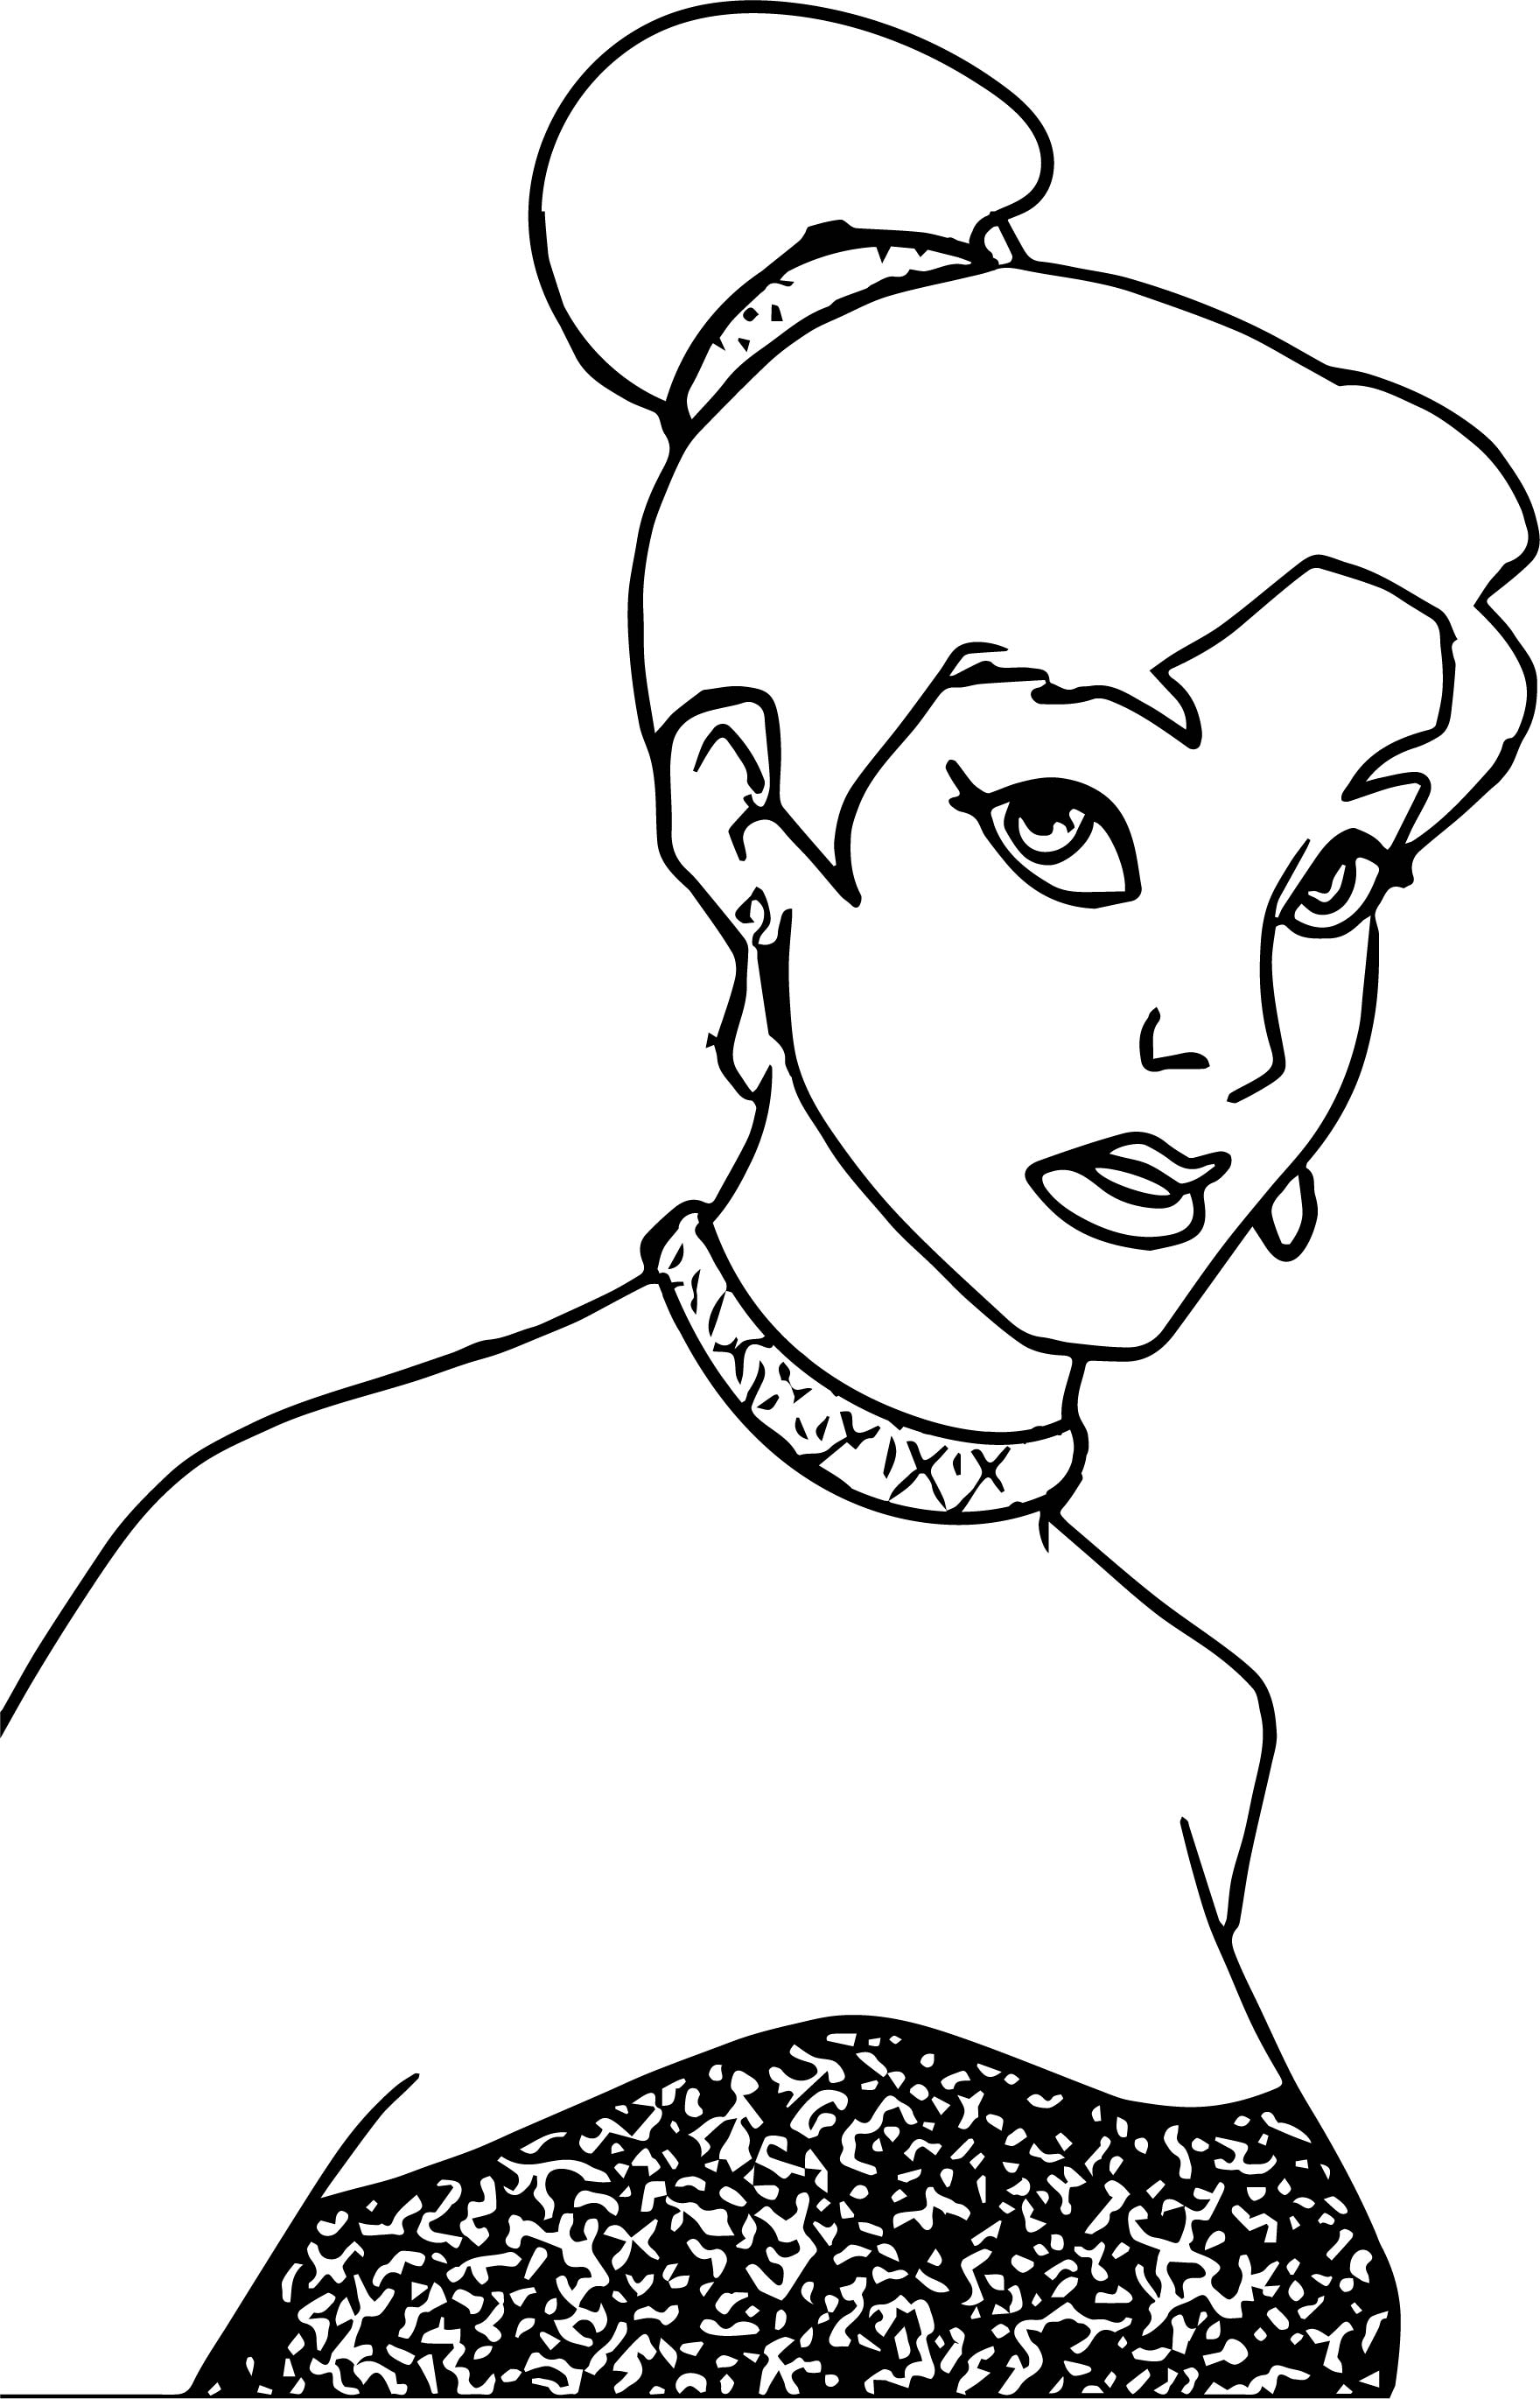 Just Anastasia Image Coloring Page